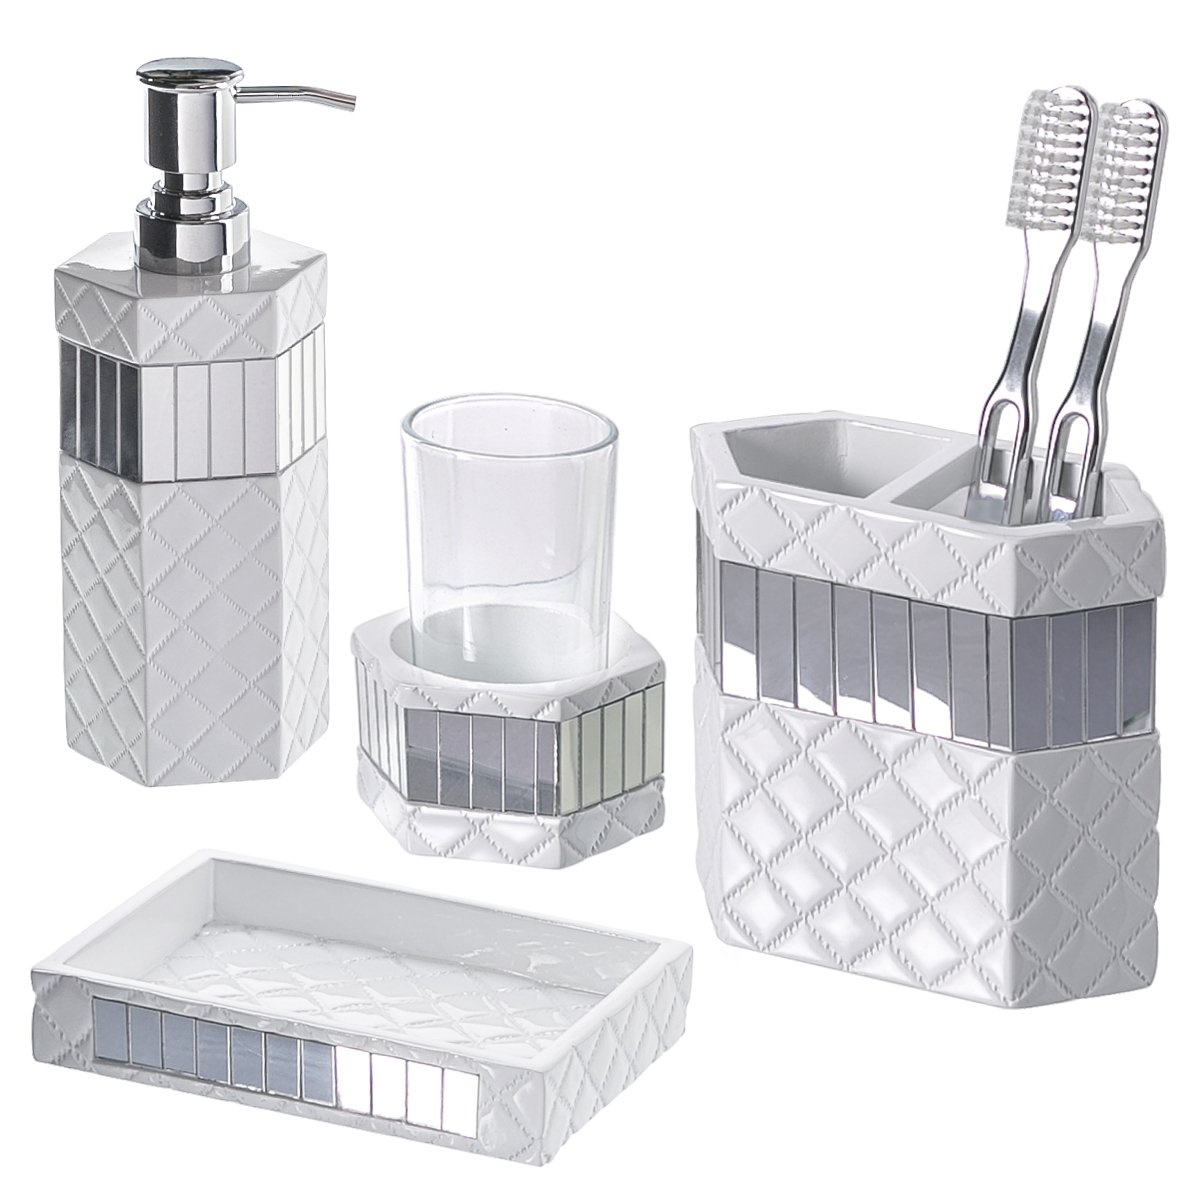 Bathroom Accessories Set With Mirror : Piece quilted mirror bathroom accessories set with soap